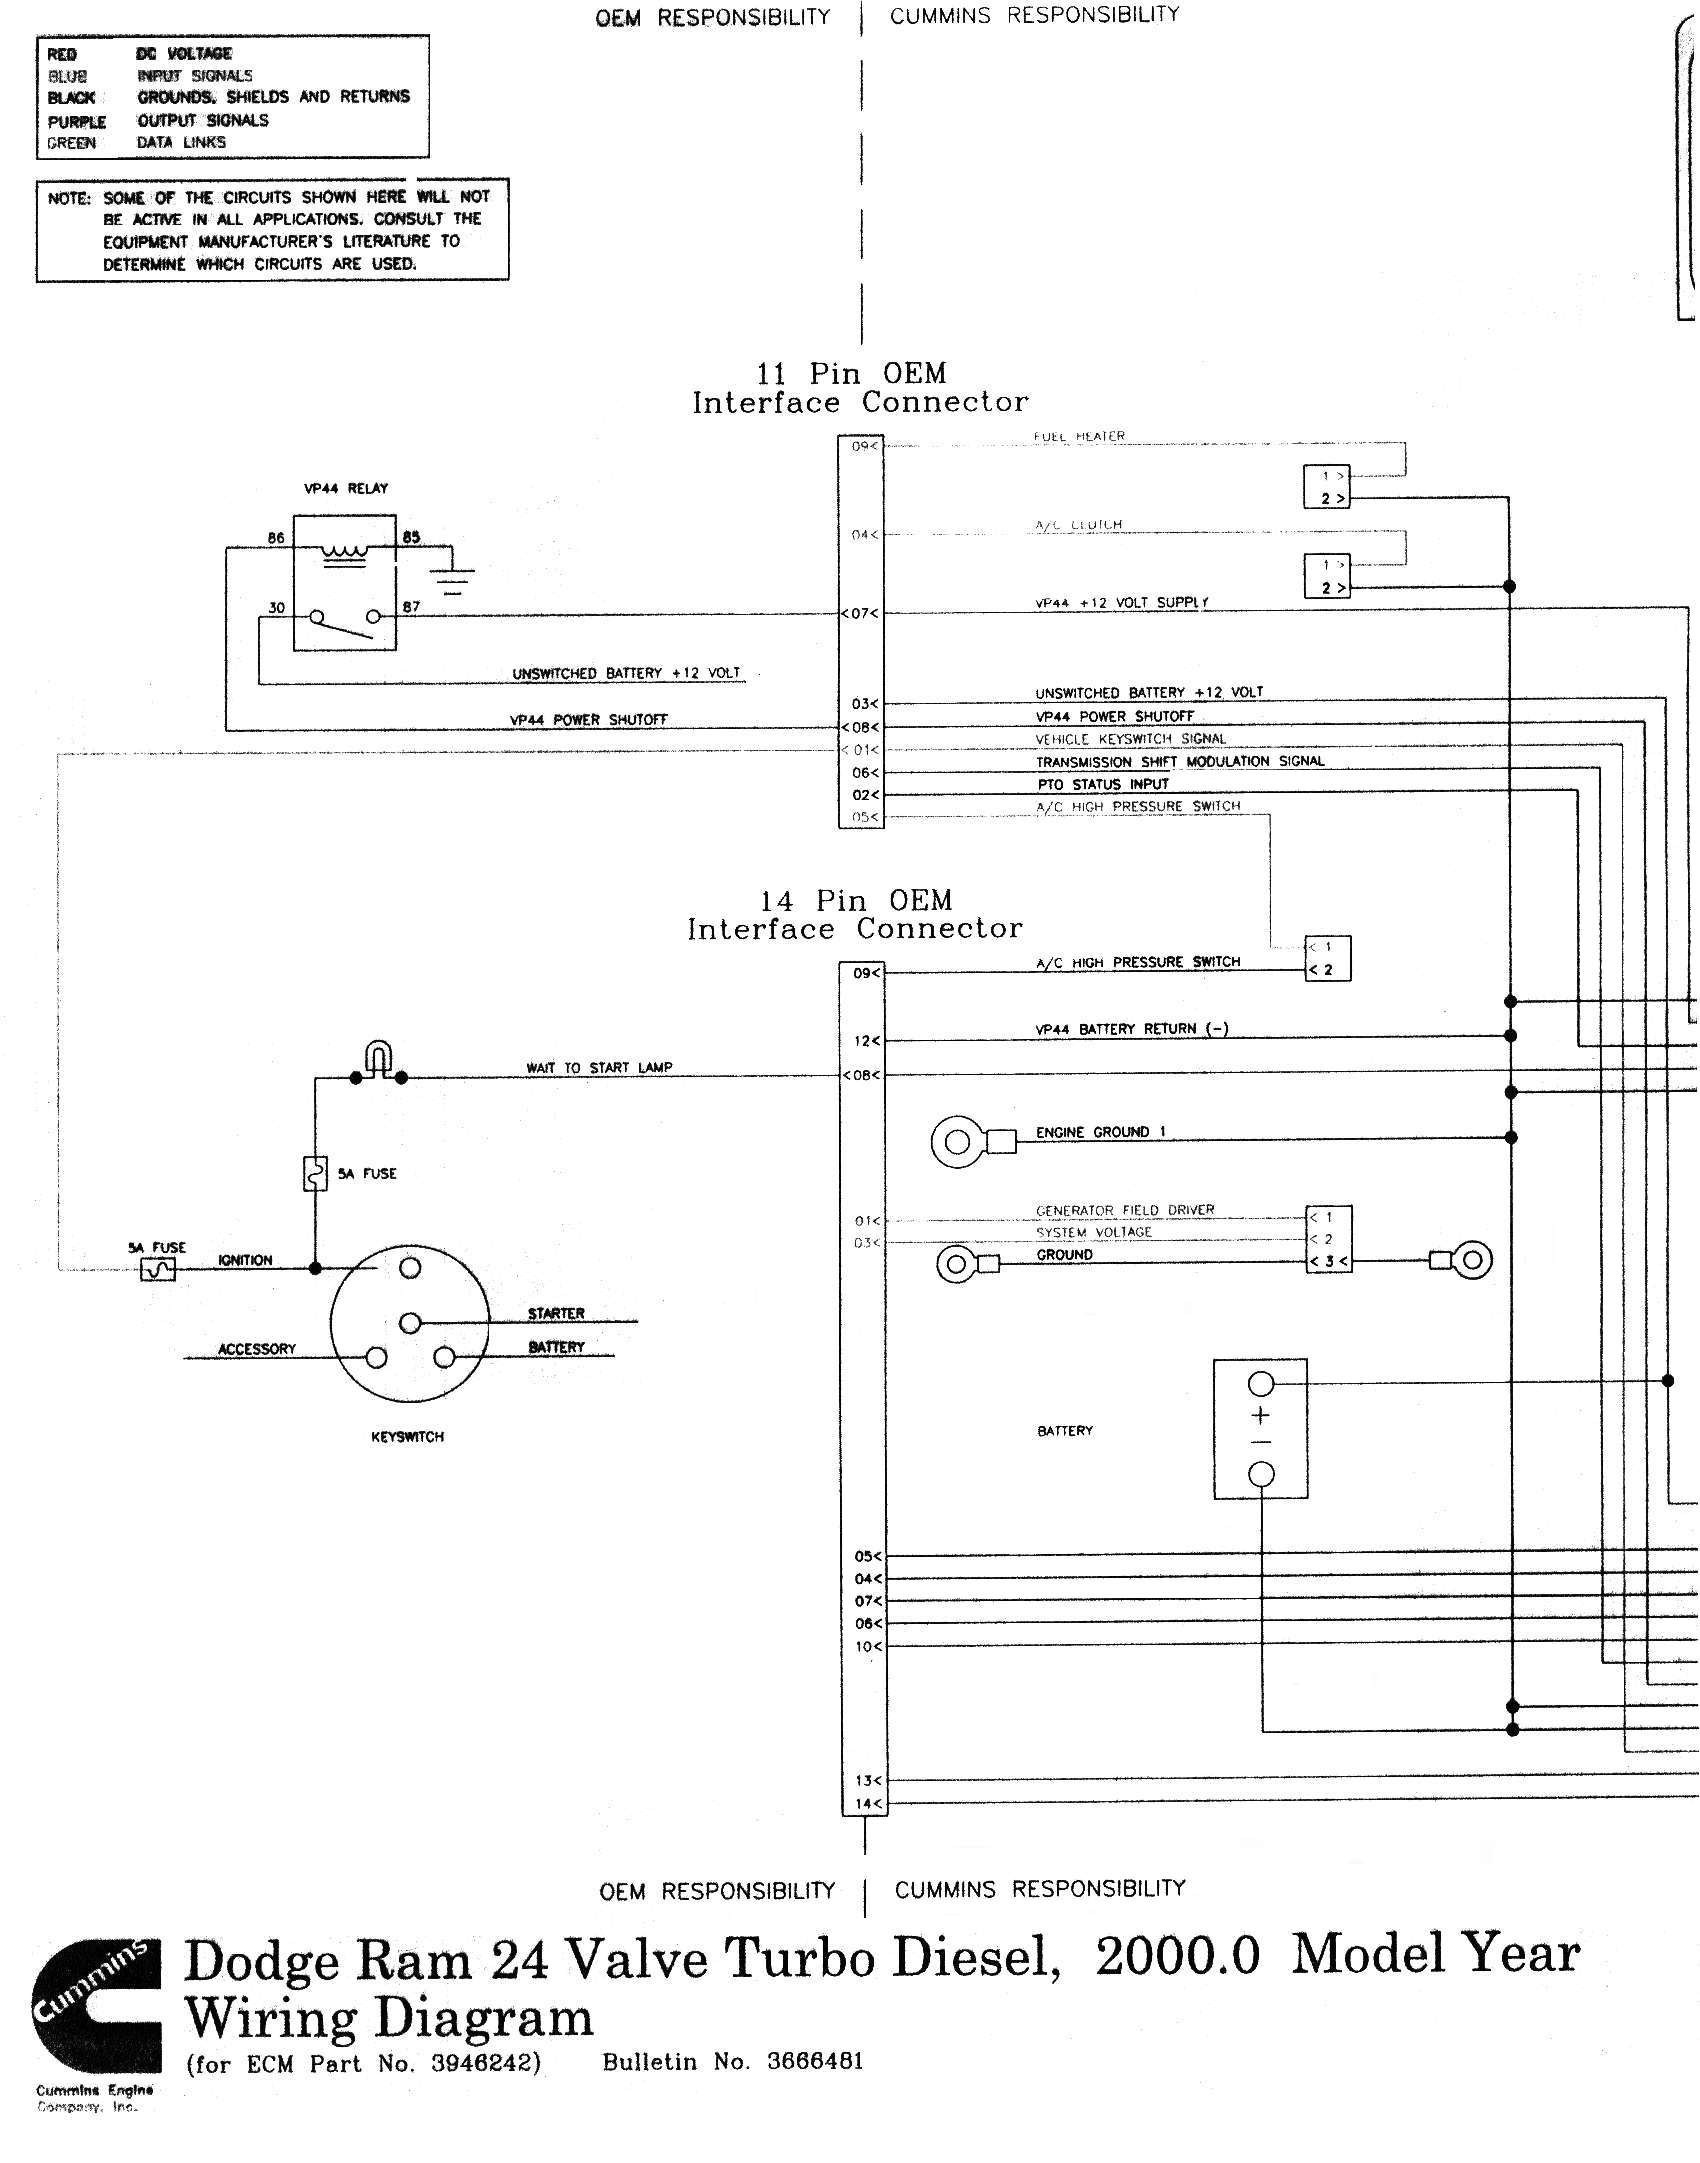 Dodge Ram Oem Parts Diagram Wiring Diagram 2007 Dodge Ram 1500 Best Ecm  Details for 1998